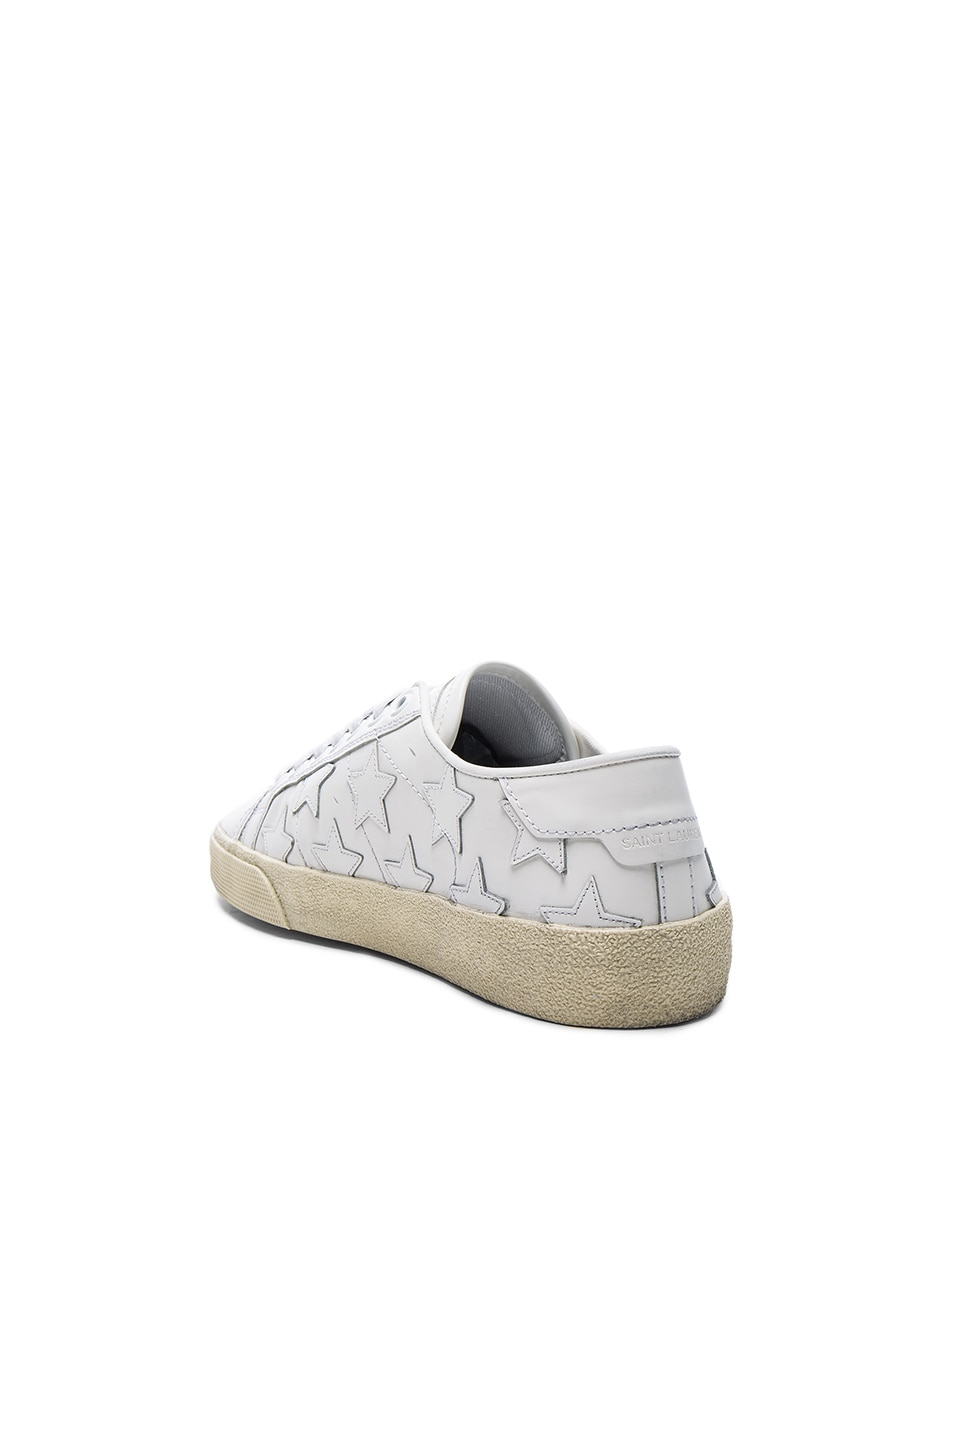 Image 3 of Saint Laurent Leather Court Classic Star Sneakers in Off White